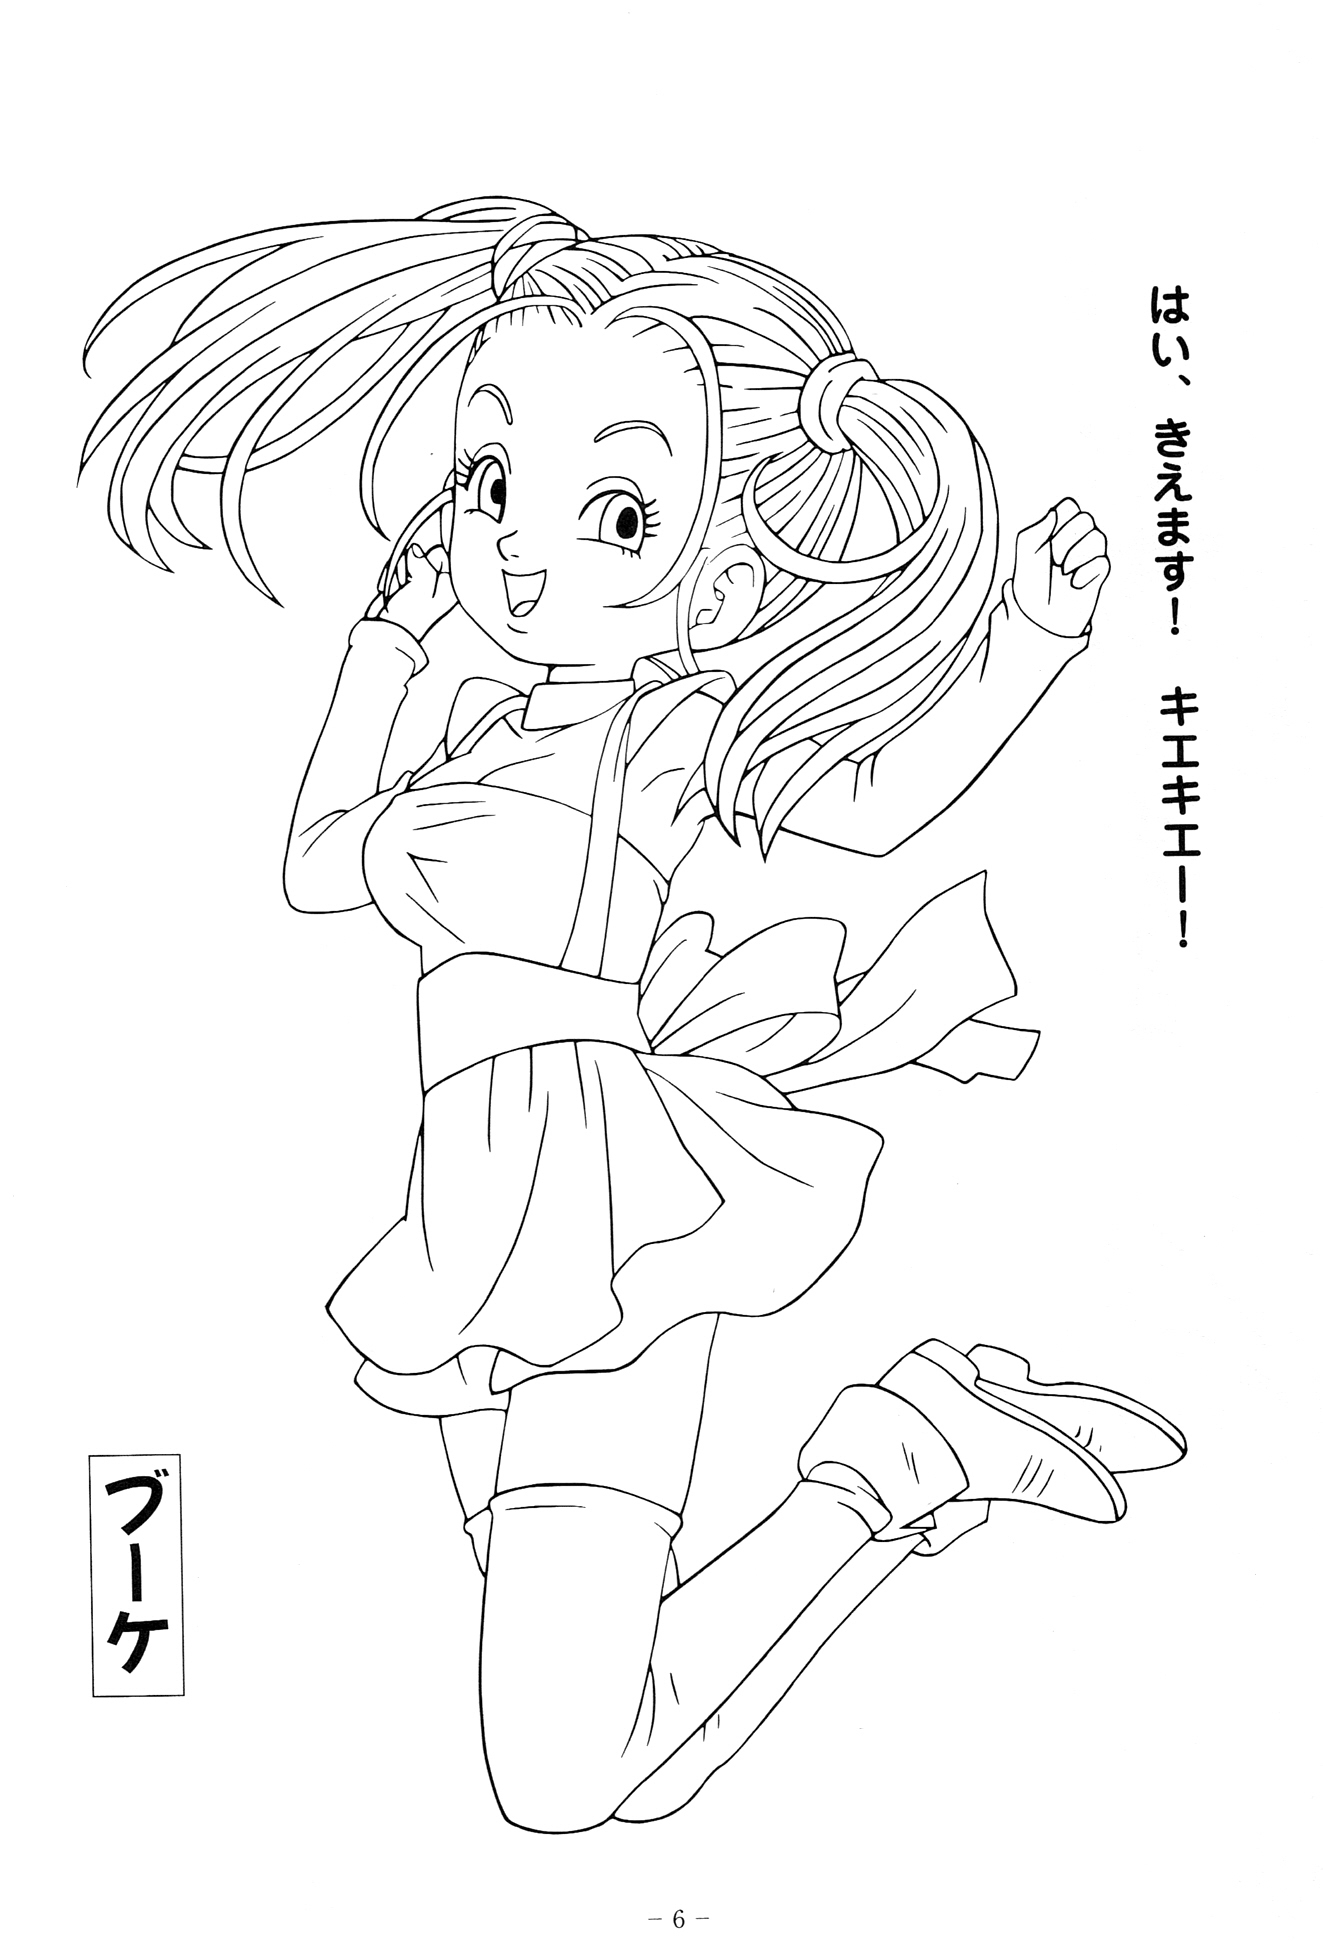 blue dragon coloring pages - photo#17